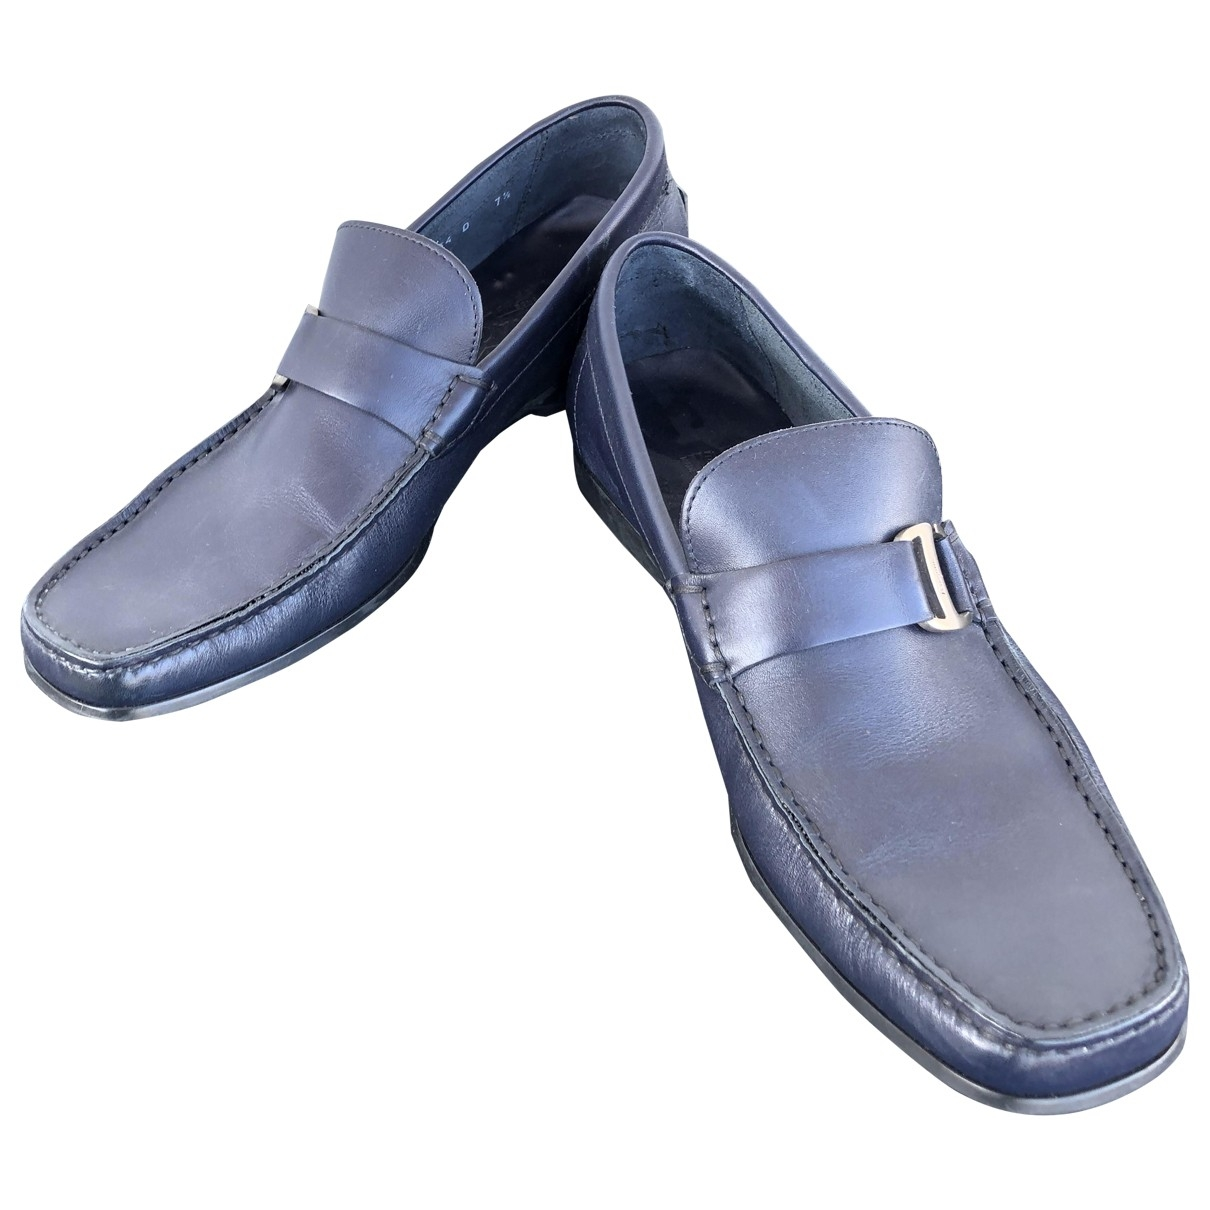 Salvatore Ferragamo \N Blue Leather Flats for Men 40.5 EU